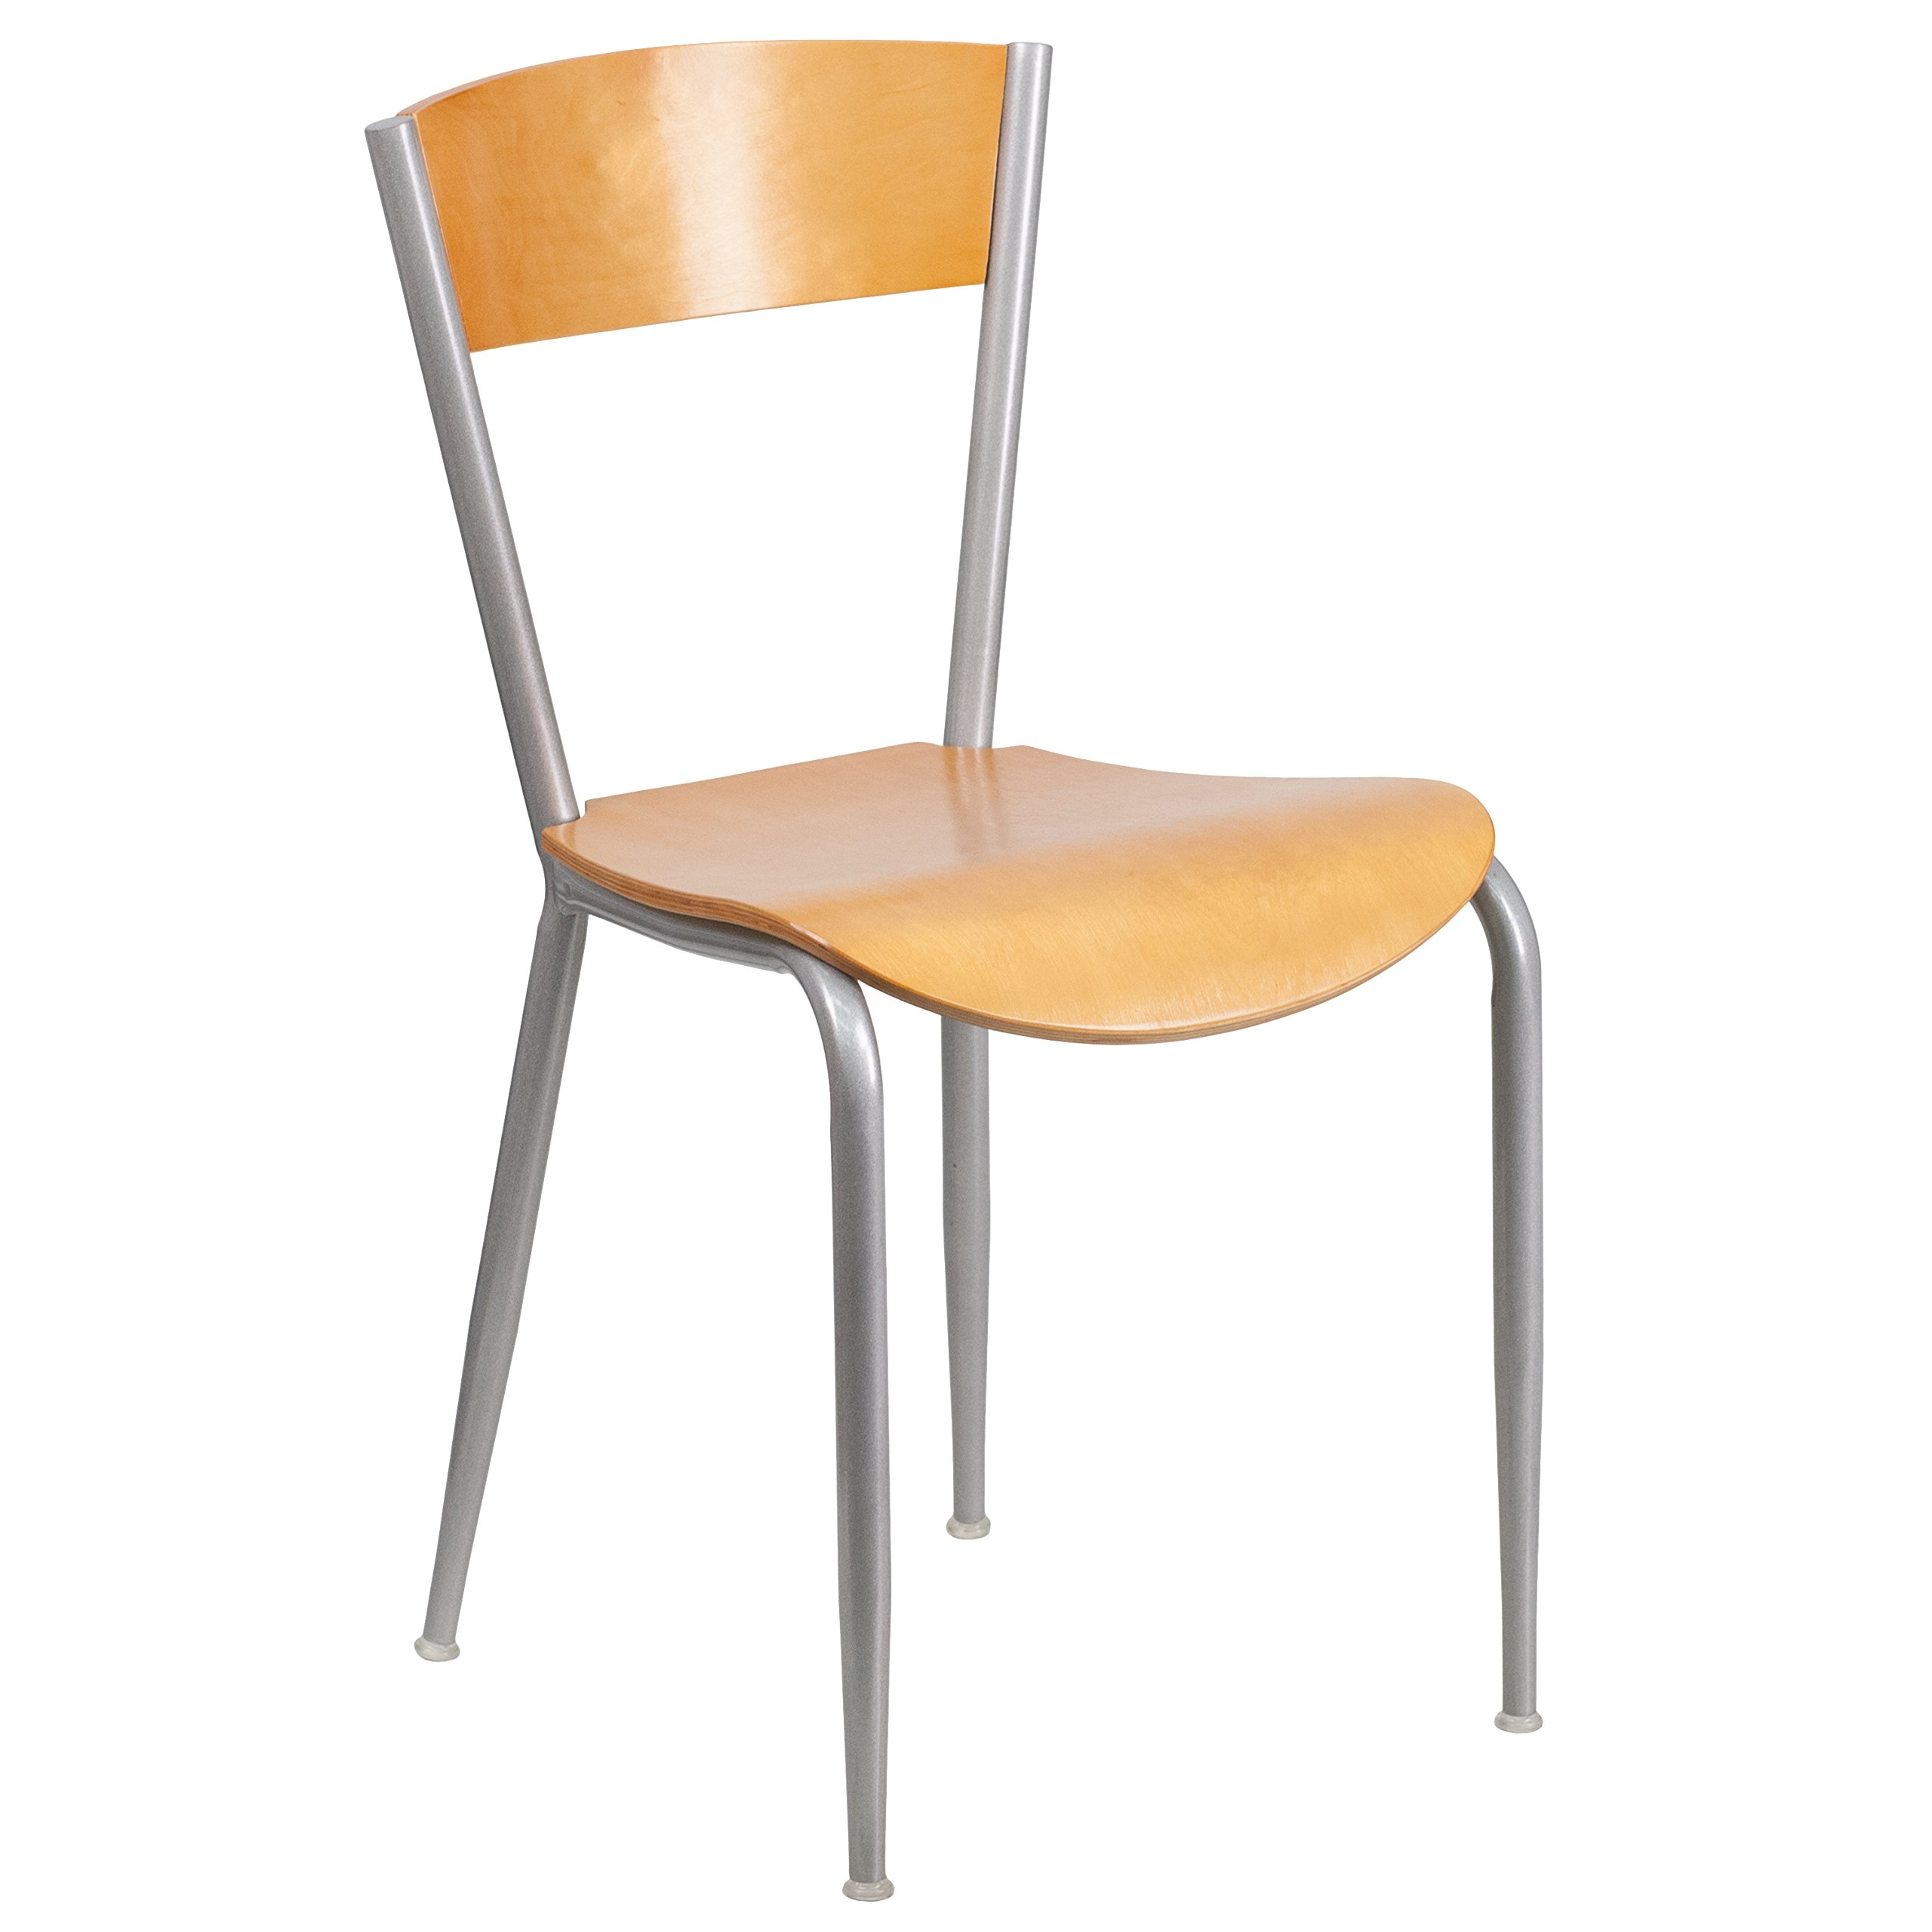 Flash Furniture Invincible Series Silver Metal Restaurant Chair - Natural Wood Back & Seat by Flash Furniture